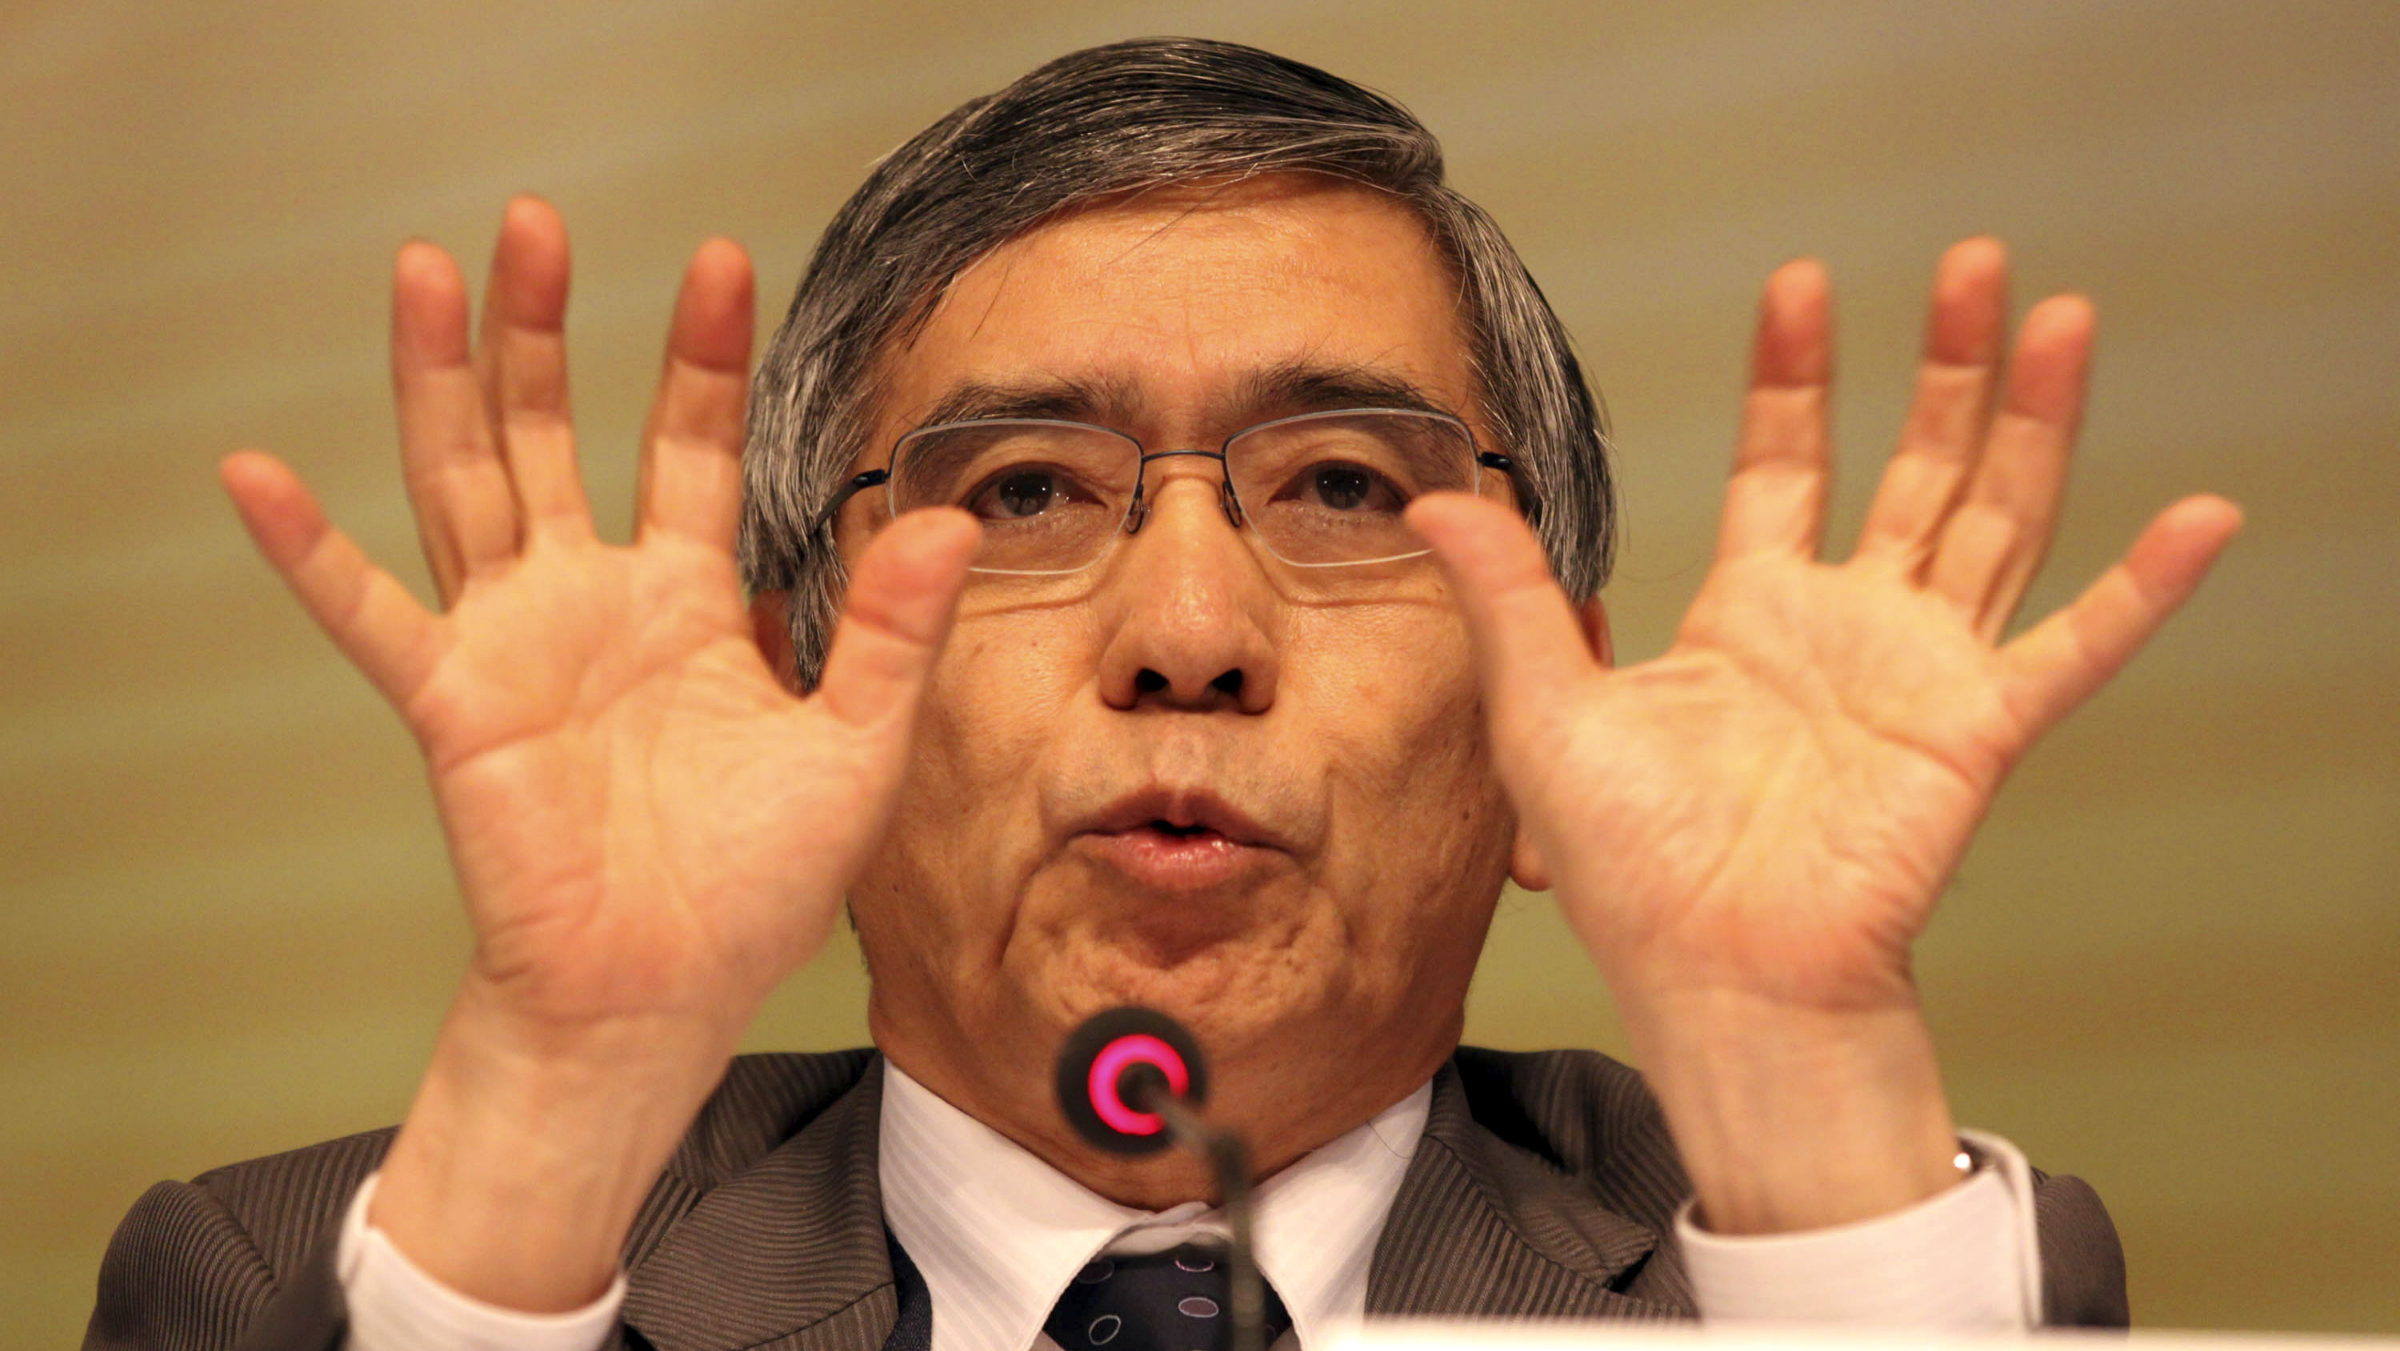 Asian Development Bank President Haruhiko Kuroda gestures as he answers the media queries during a press conference on the last day of the 45th Annual Meeting of the Board of Governors Saturday, May 5, 2012 at the Philippine International Convention Center in suburban Pasay City, Philippines. Kuroda pointed out that poverty, although declining, remains the region's number one challenge. (AP Photo/Pat Roque